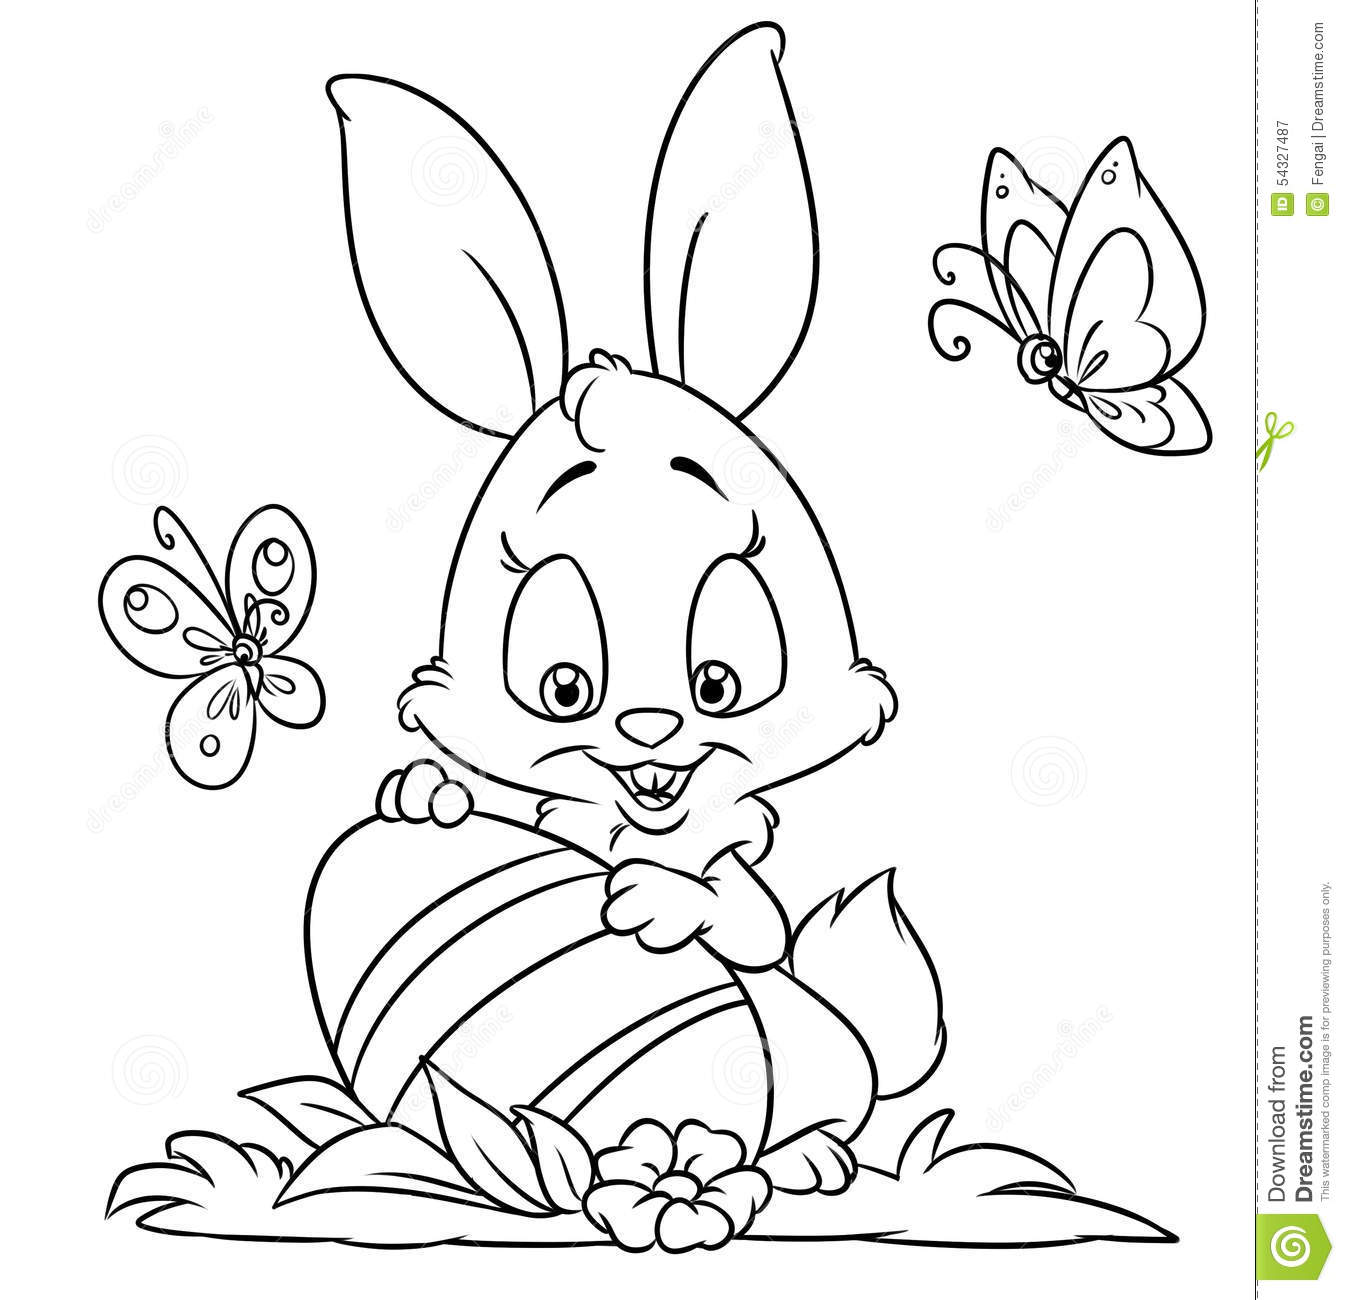 happy easter bunny coloring pages stock illustration illustration